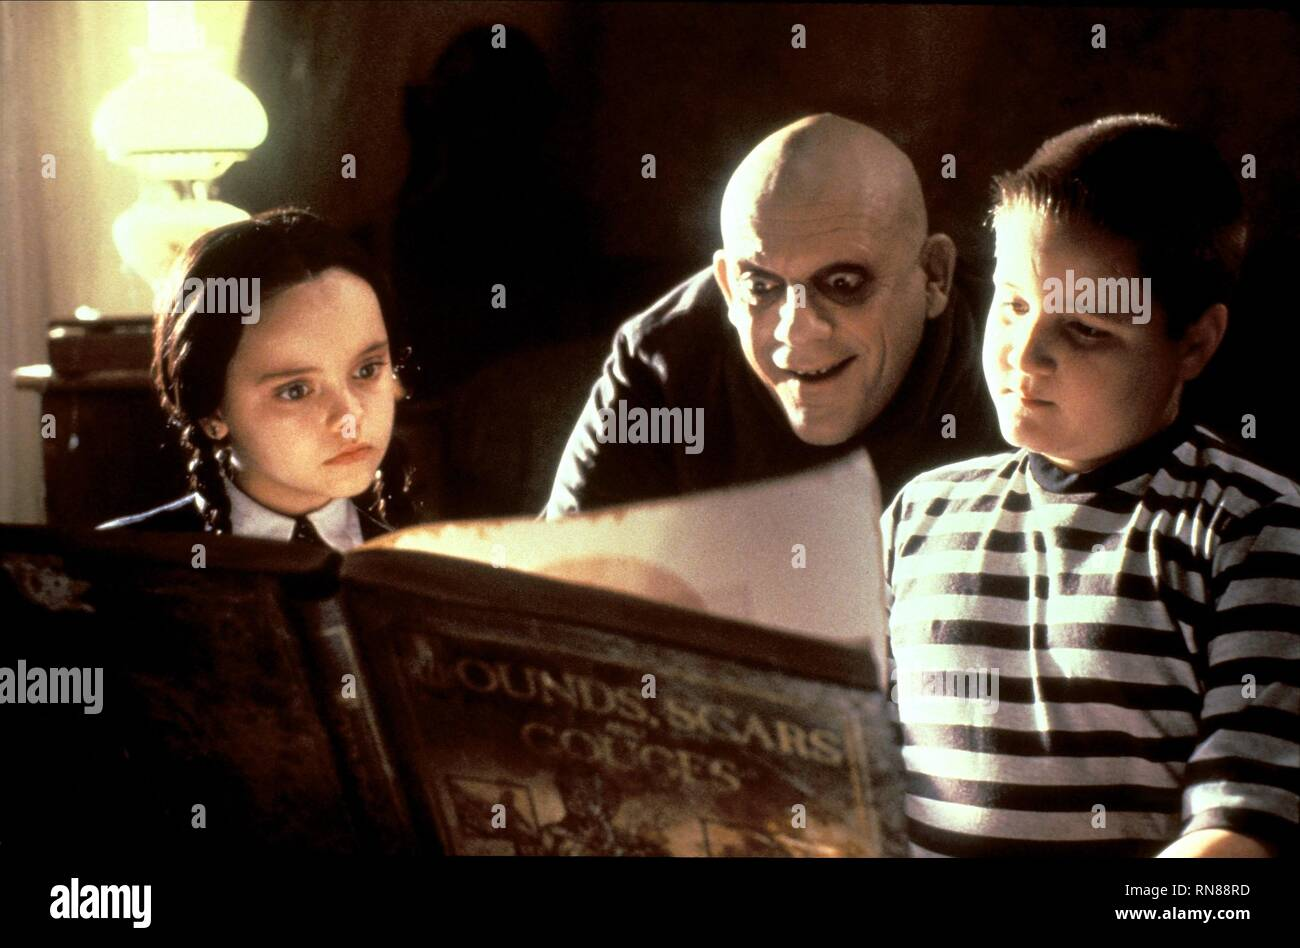 Pugsley The Addams Family High Resolution Stock Photography And Images Alamy